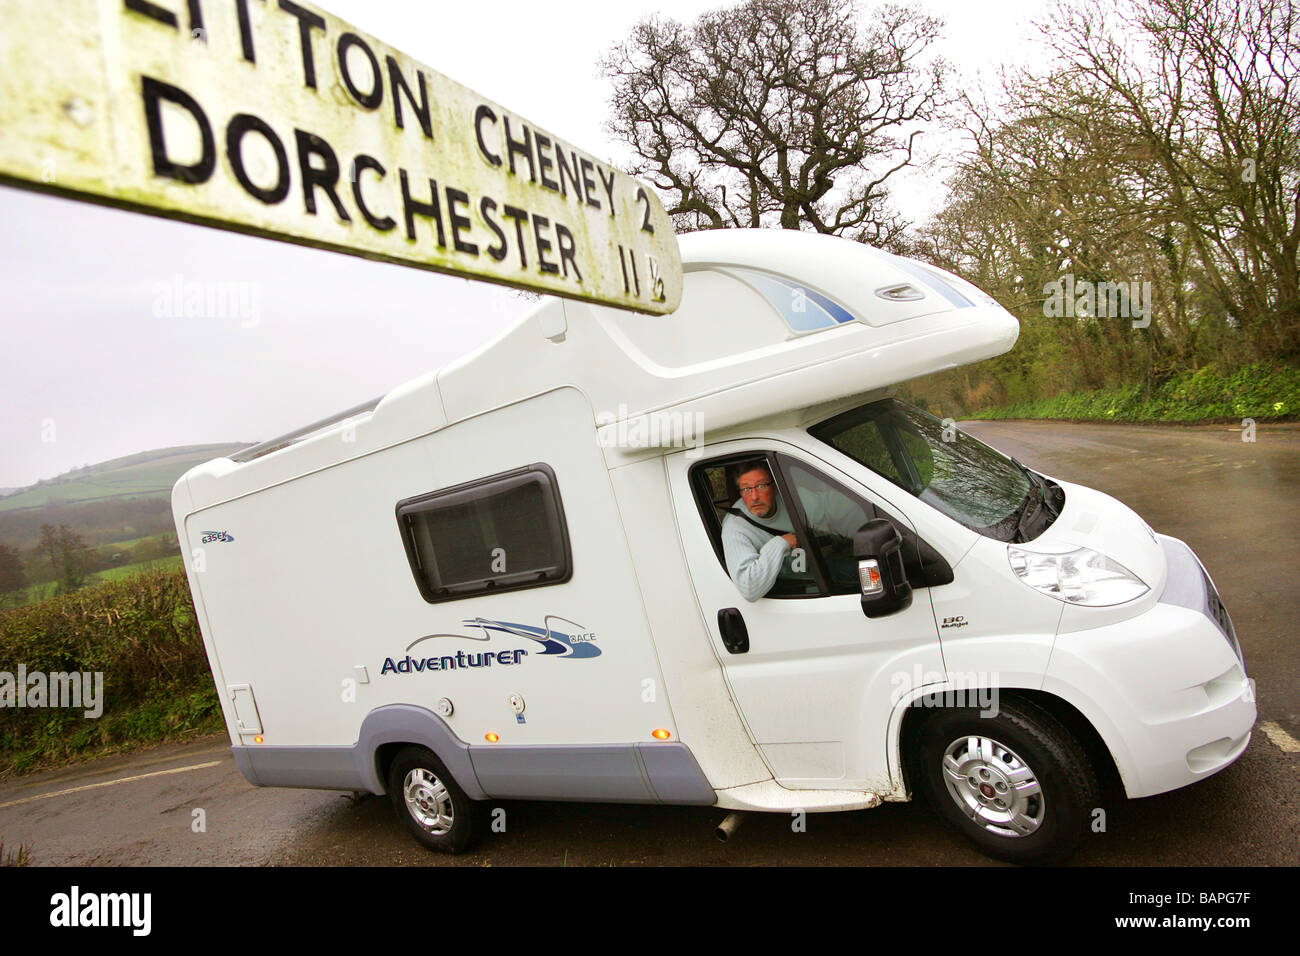 Motorhome in country lane. - Stock Image